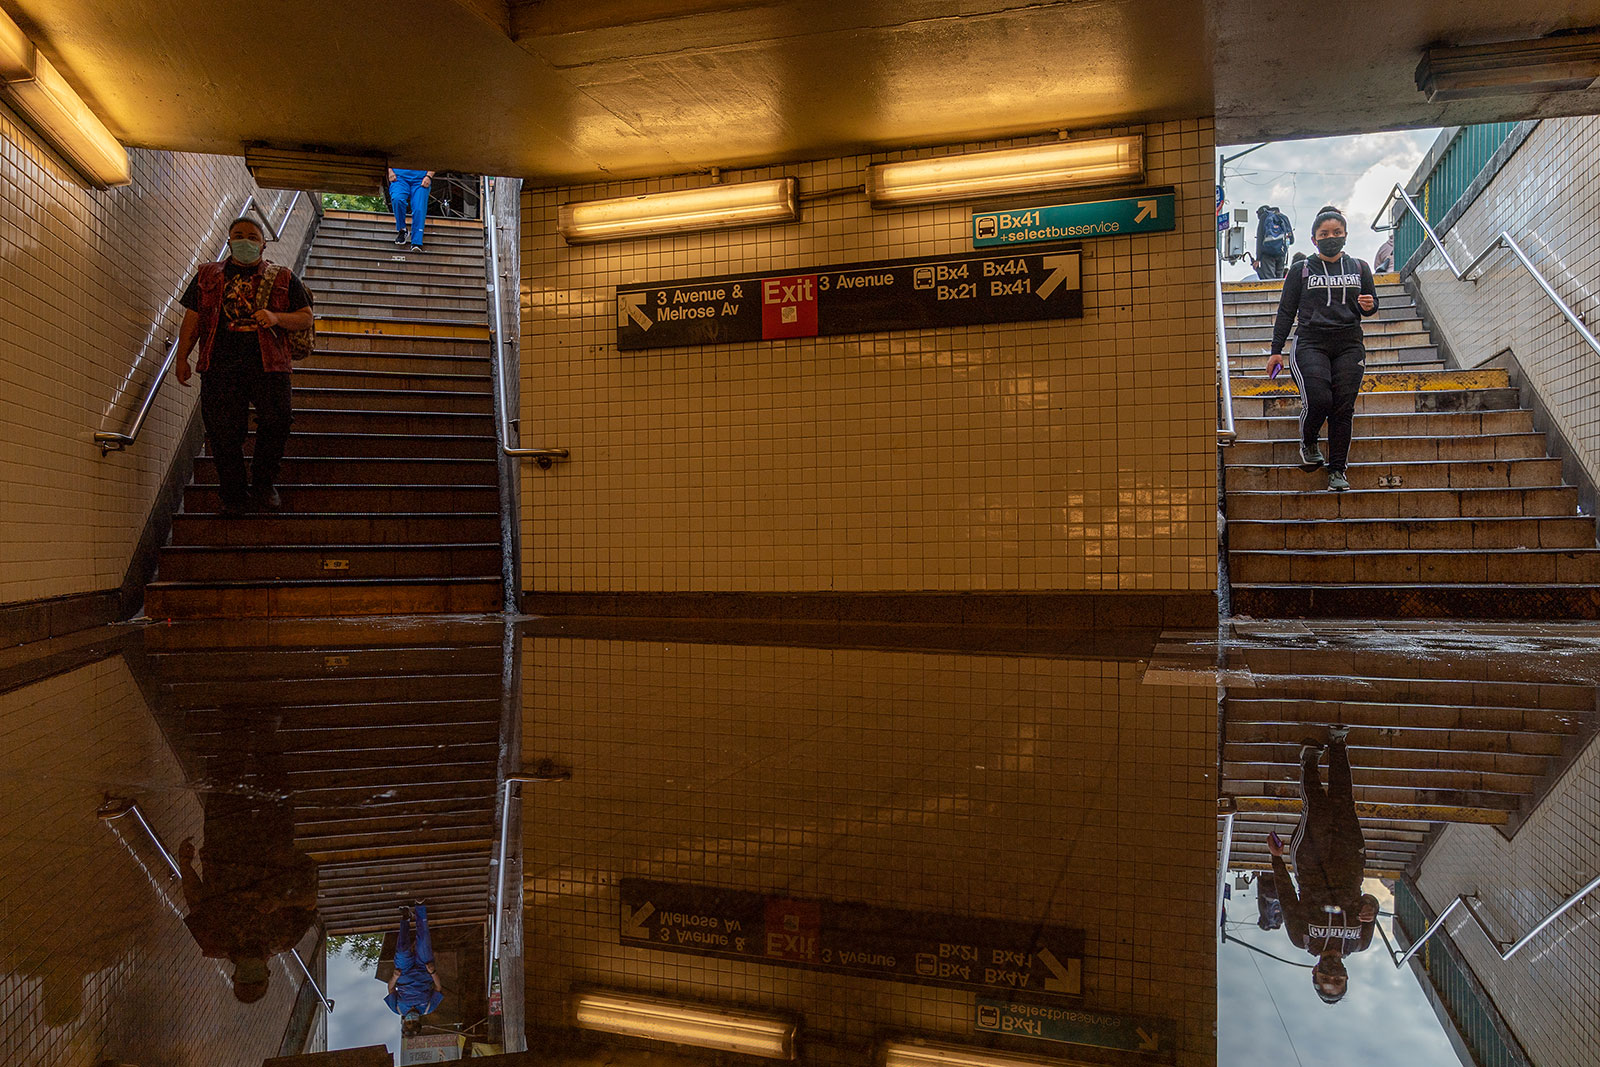 Commuters walk into a flooded subway station in New York on September 2.